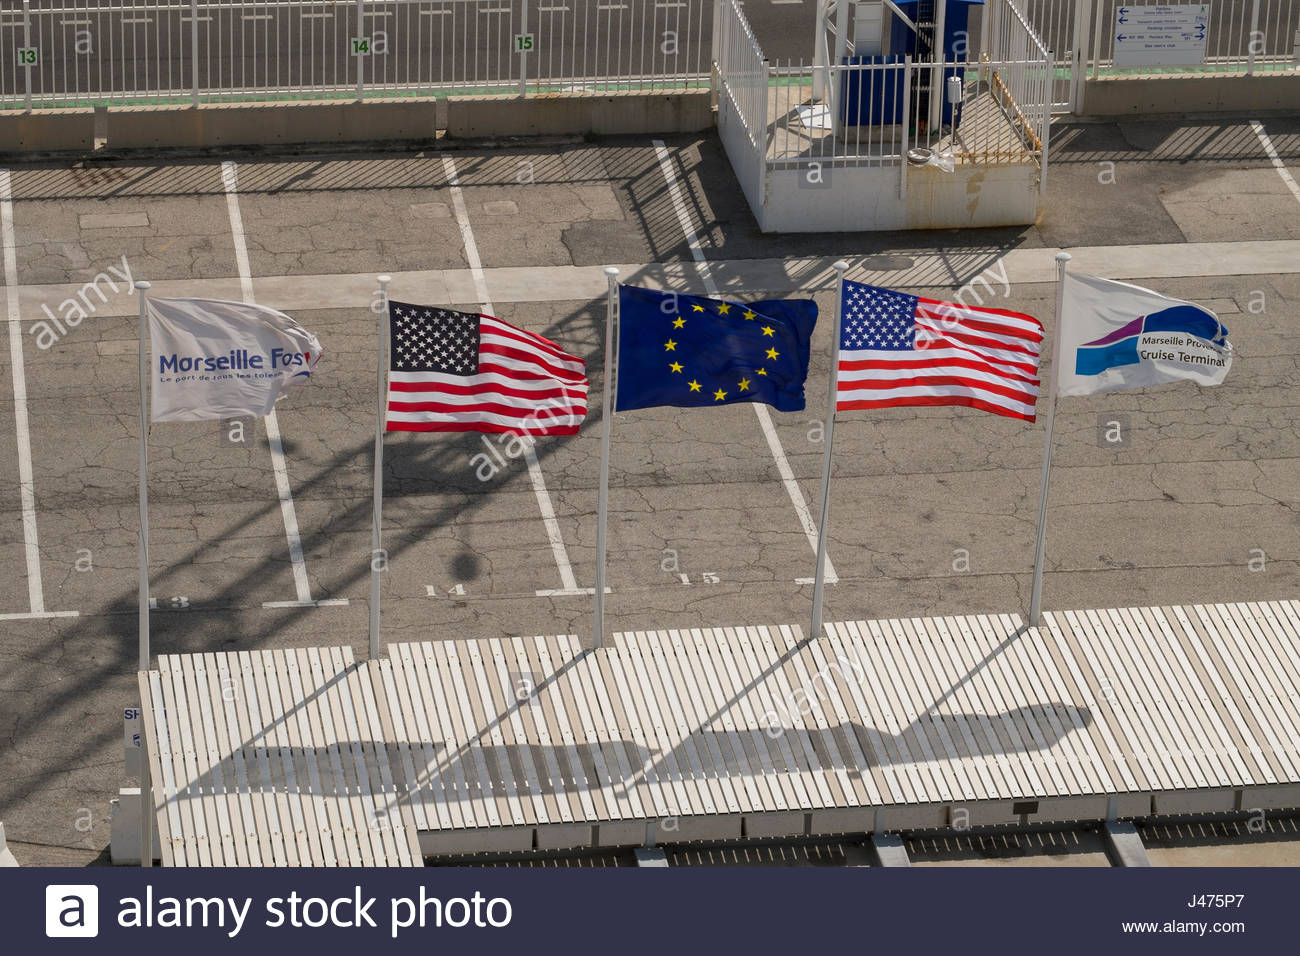 United States flag and the European Union flags flying at the Marseille Provence cruise terminal, madrague-ville, - Stock Image